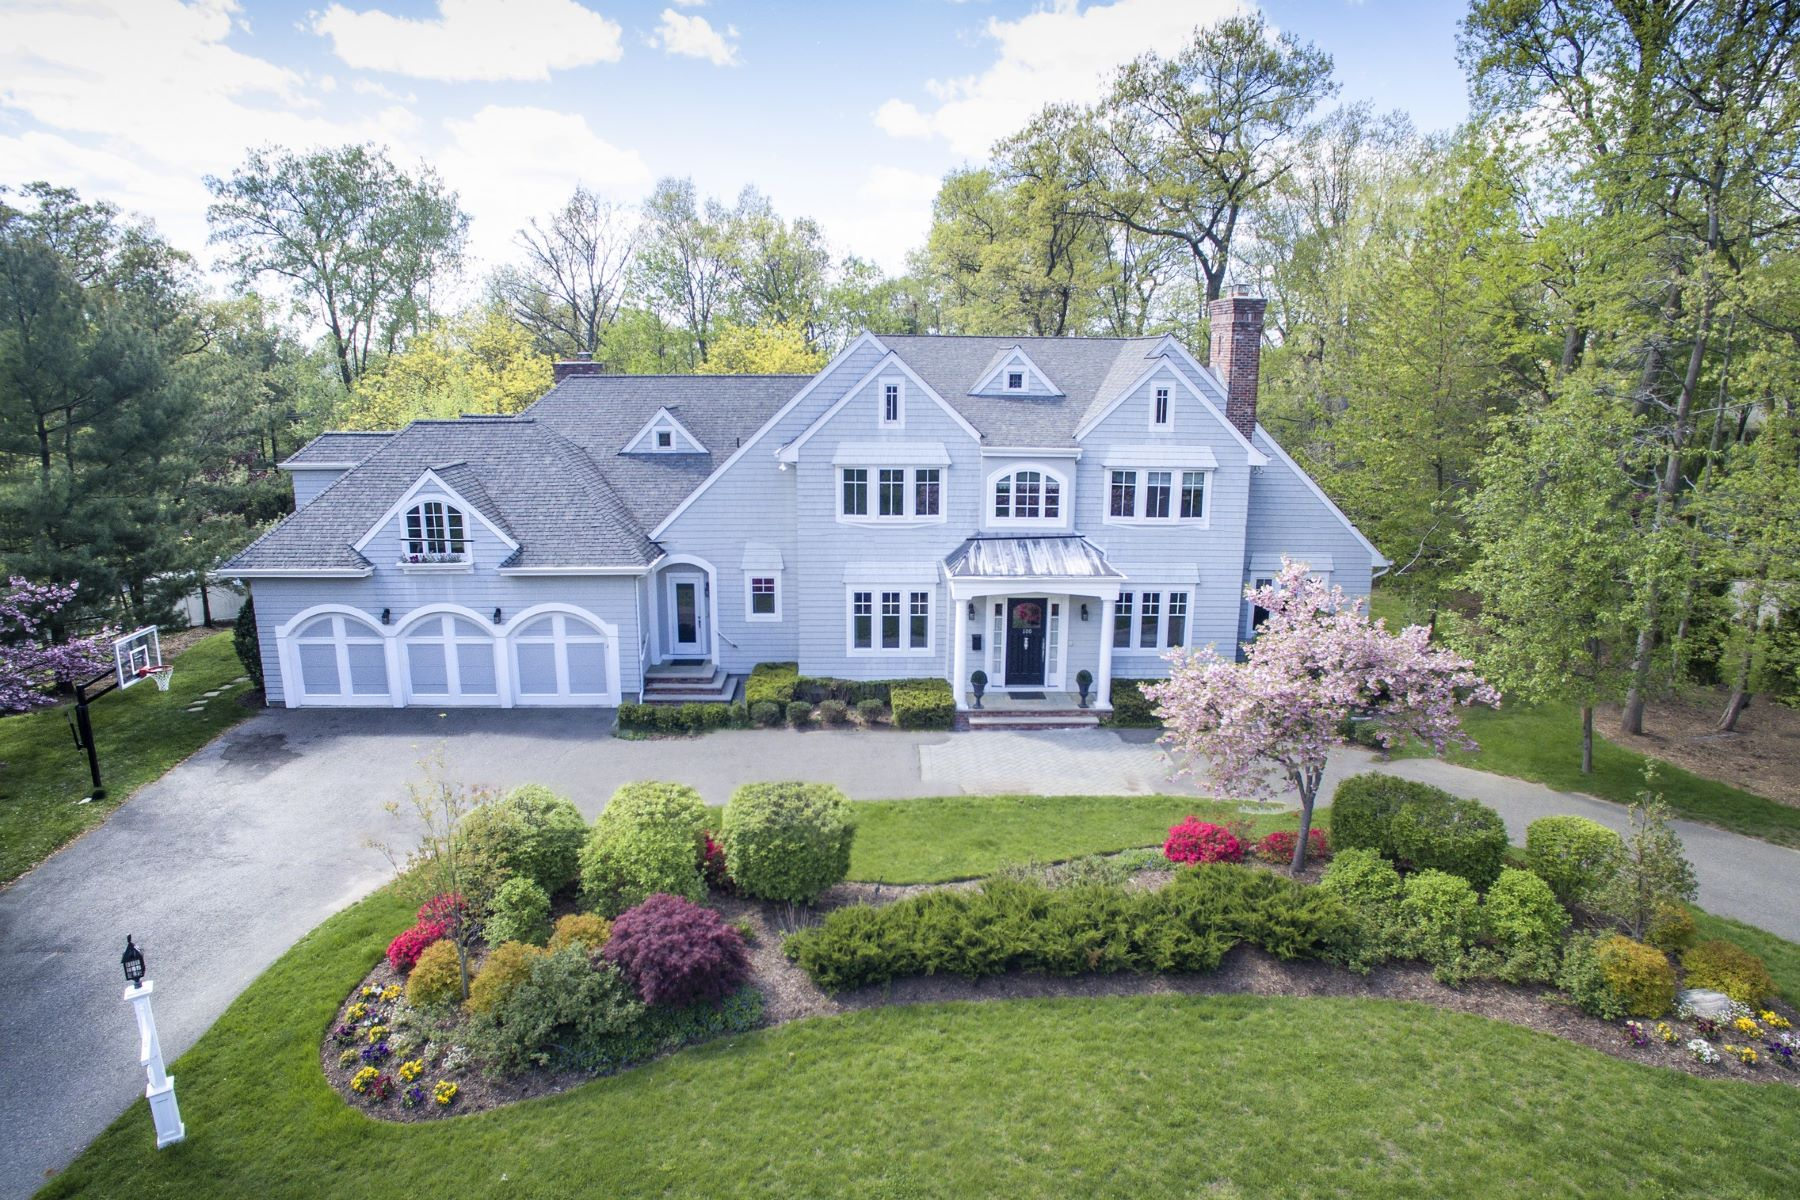 Single Family Home for Sale at Hampton Style Estate 100 Devriese Court Tenafly, New Jersey 07670 United States